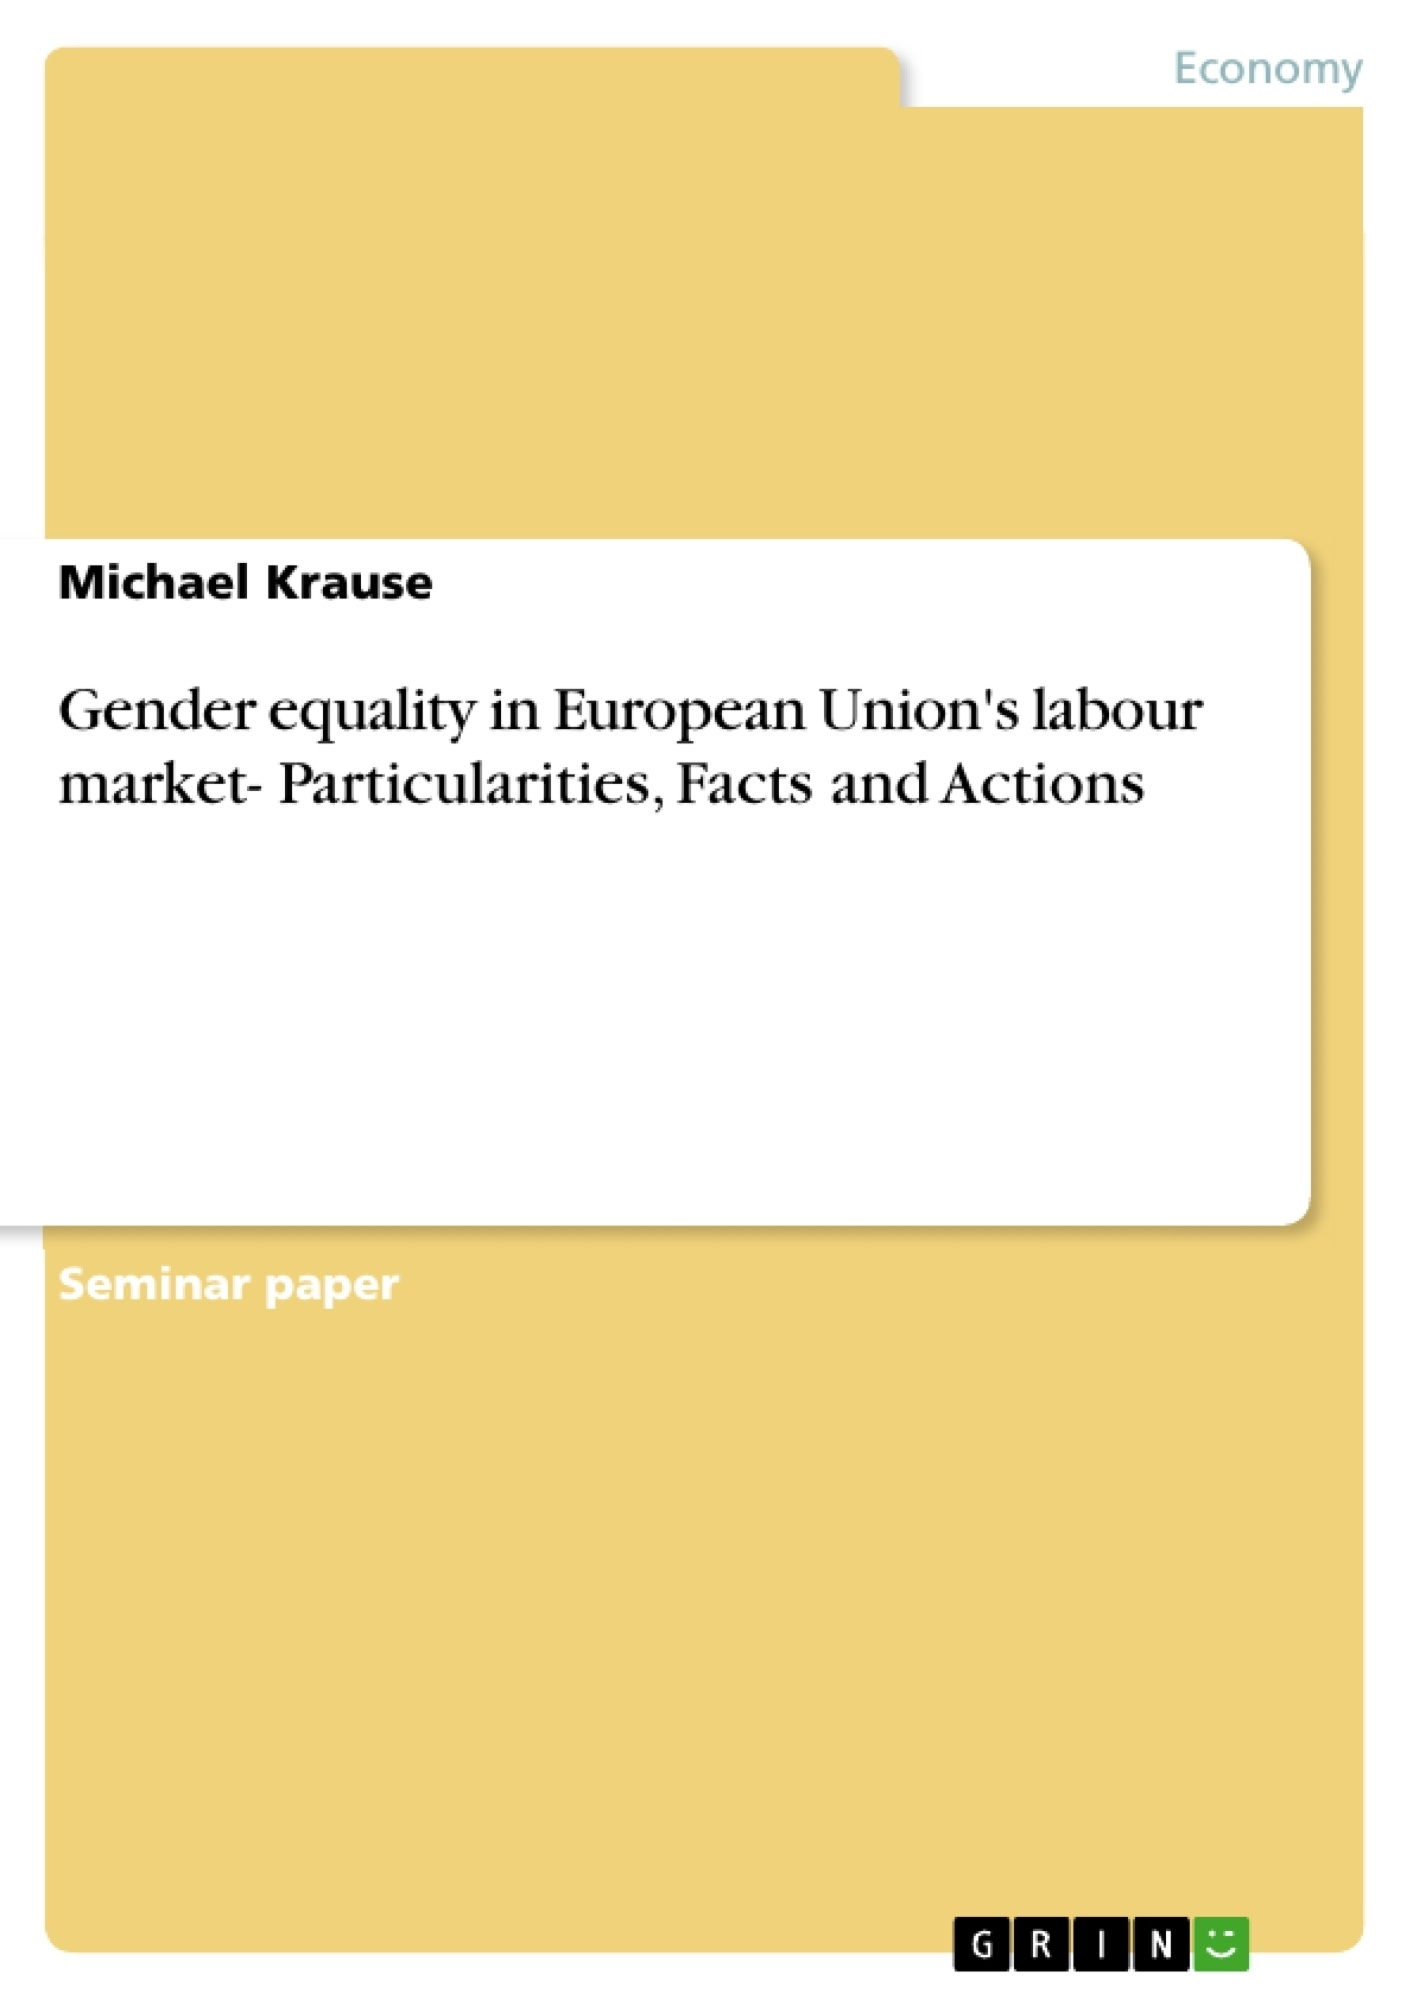 Title: Gender equality in European Union's labour market- Particularities, Facts and Actions